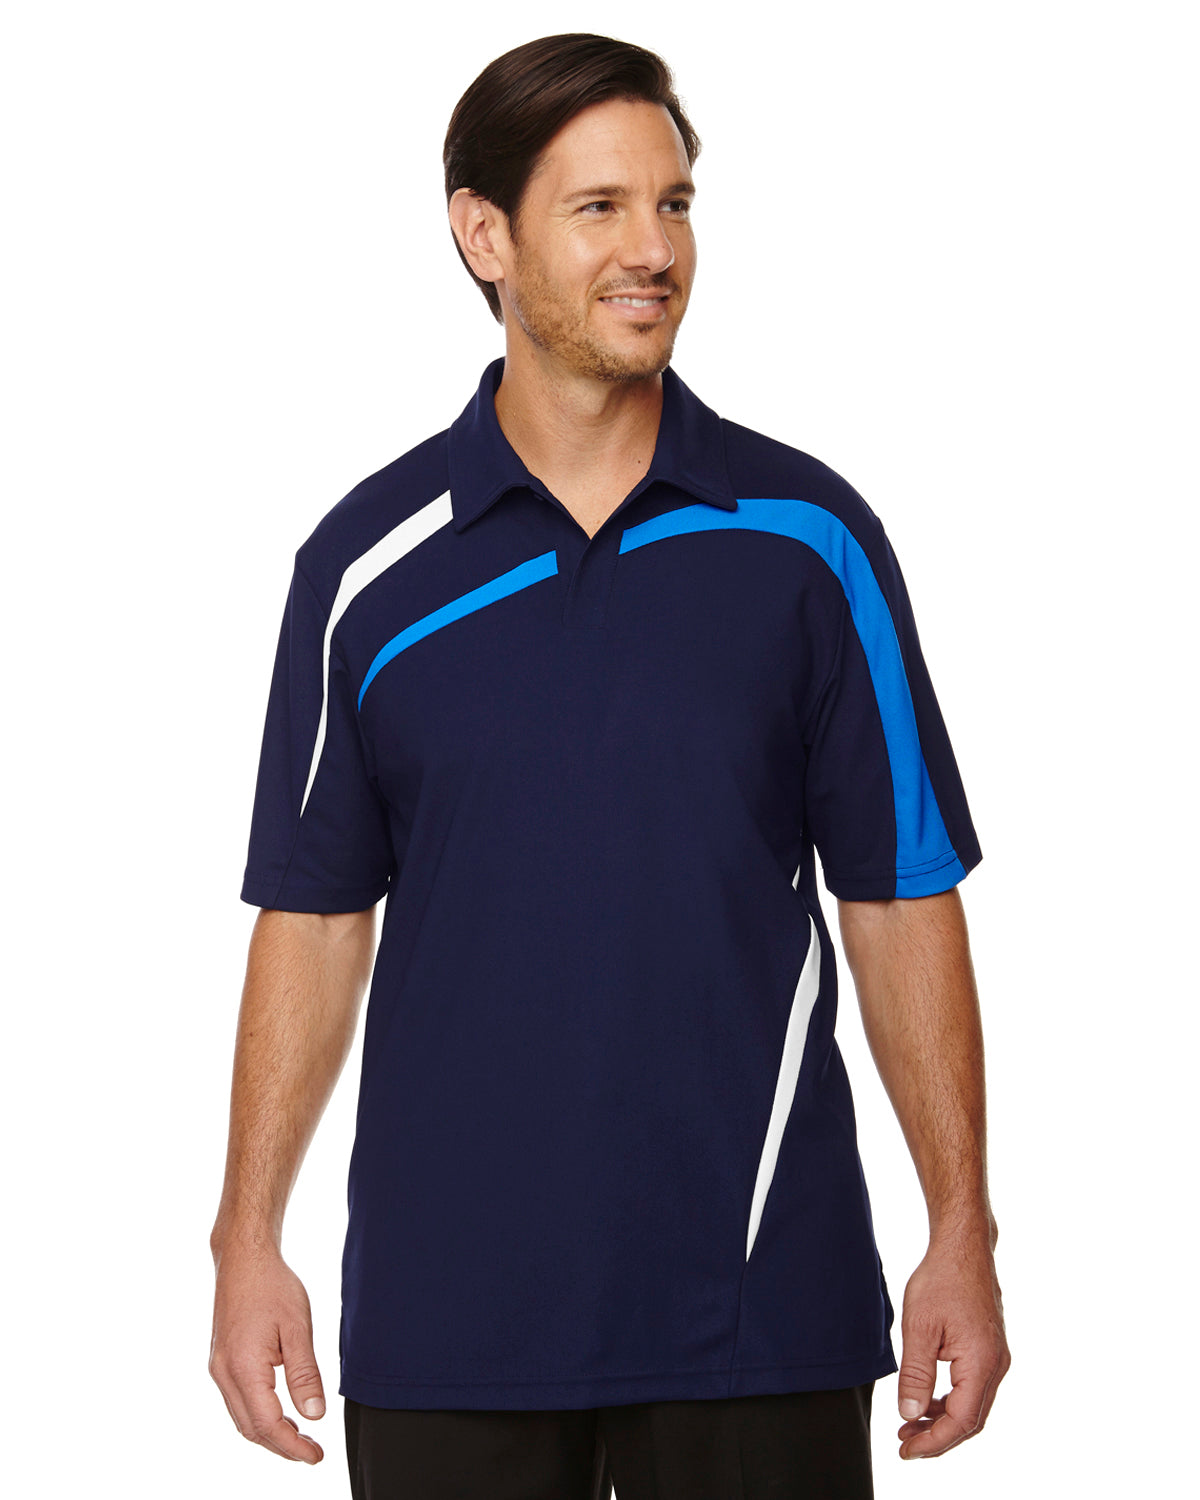 NORTH END MEN'S IMPACT PERFORMANCE POLYESTER PIQUE COLOR BLOCK POLO